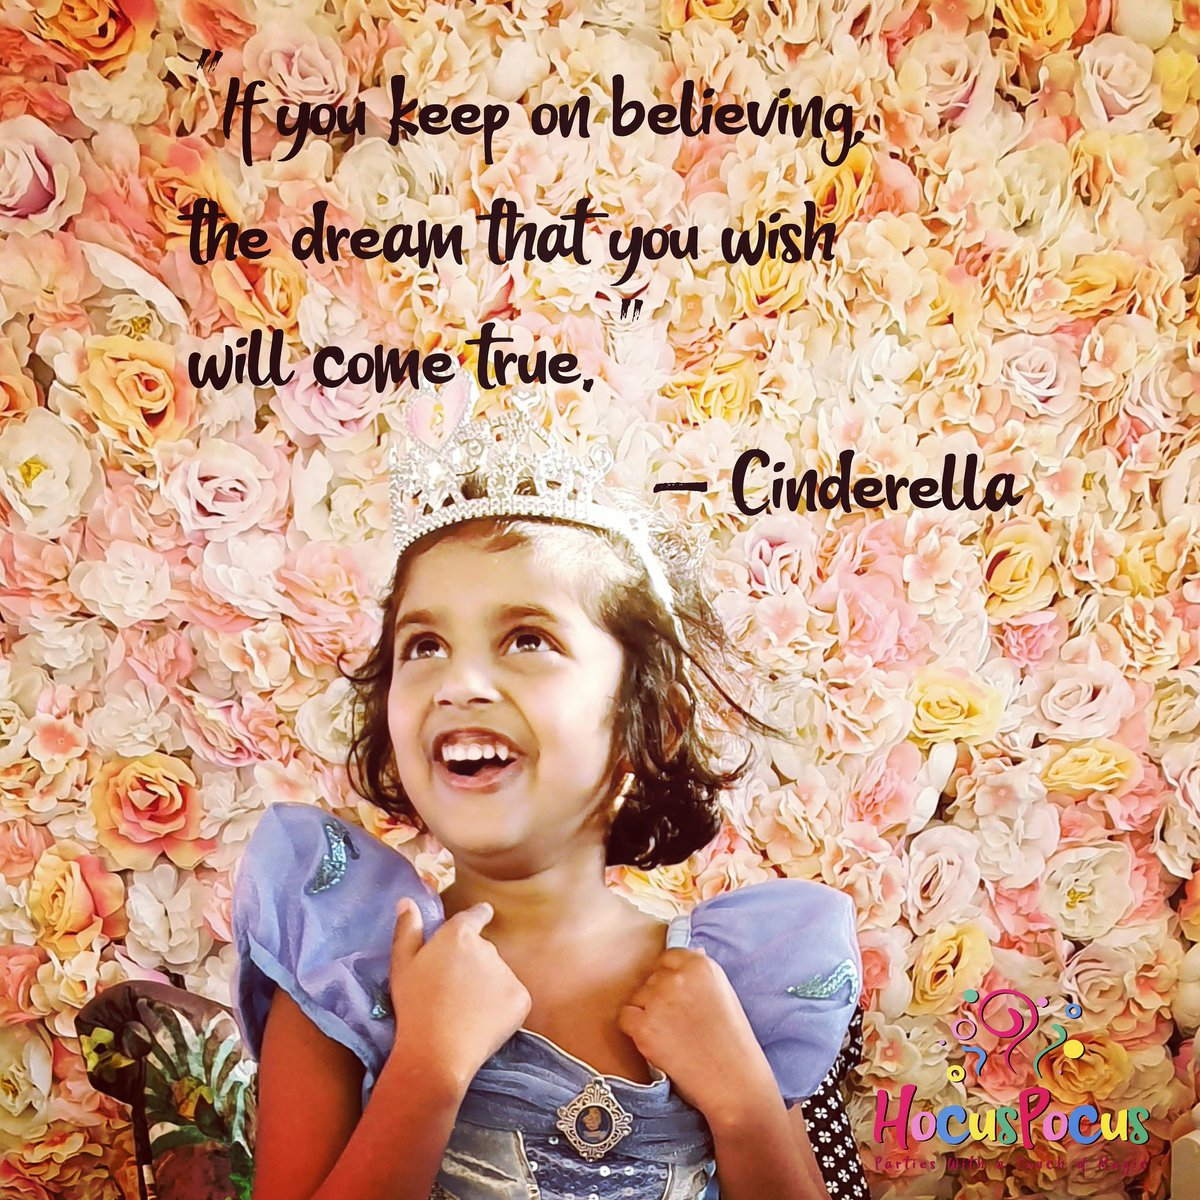 """""""If you keep on believing, that dream that you wish will come true,"""" - Cinderella  #hocuspocusparties #princess #princessparty #wirral  #wirralkids #wirralbusinesses #wirralbusinesses #cheshire #party2021 #partyideas #quotes #quoteoftheday #picoftheday #disneyprincess"""